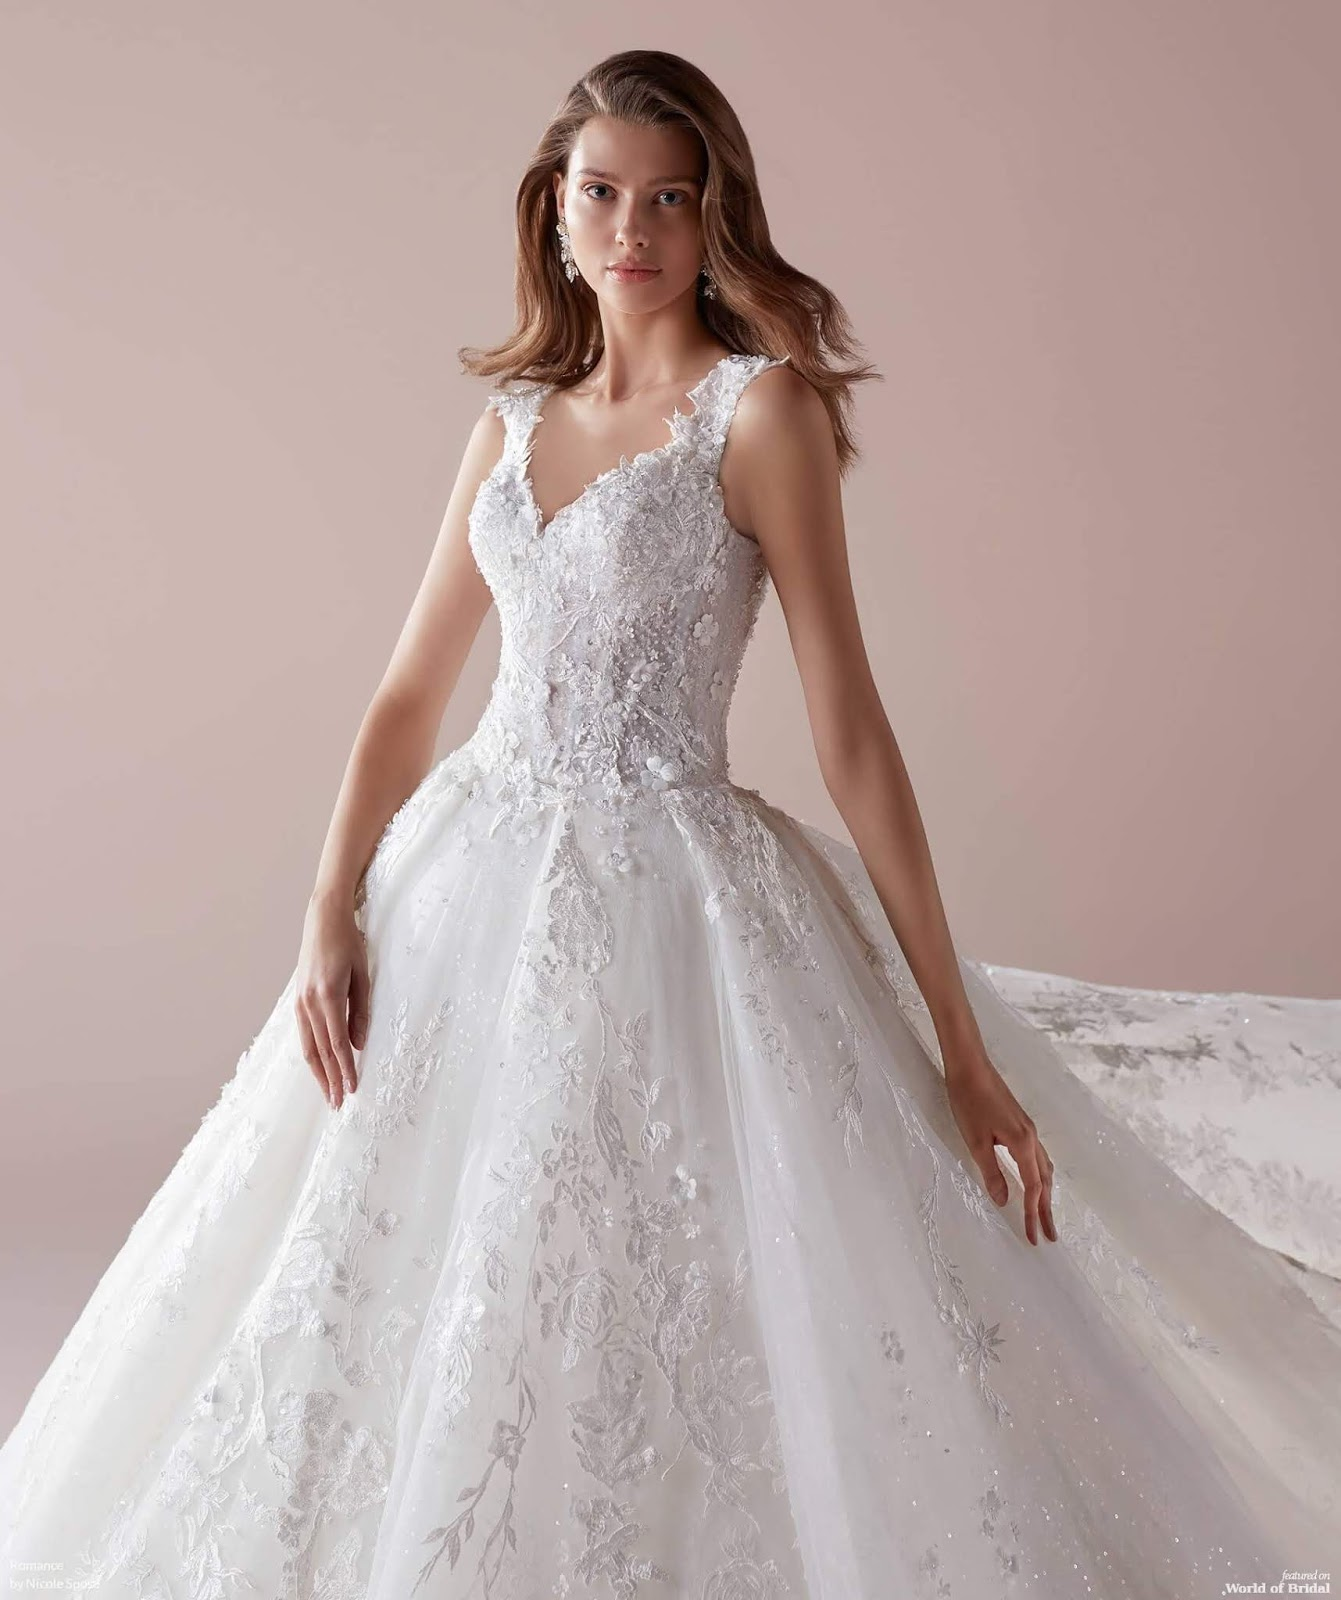 Romance By Nicole Spose 2019 Bridal Collection